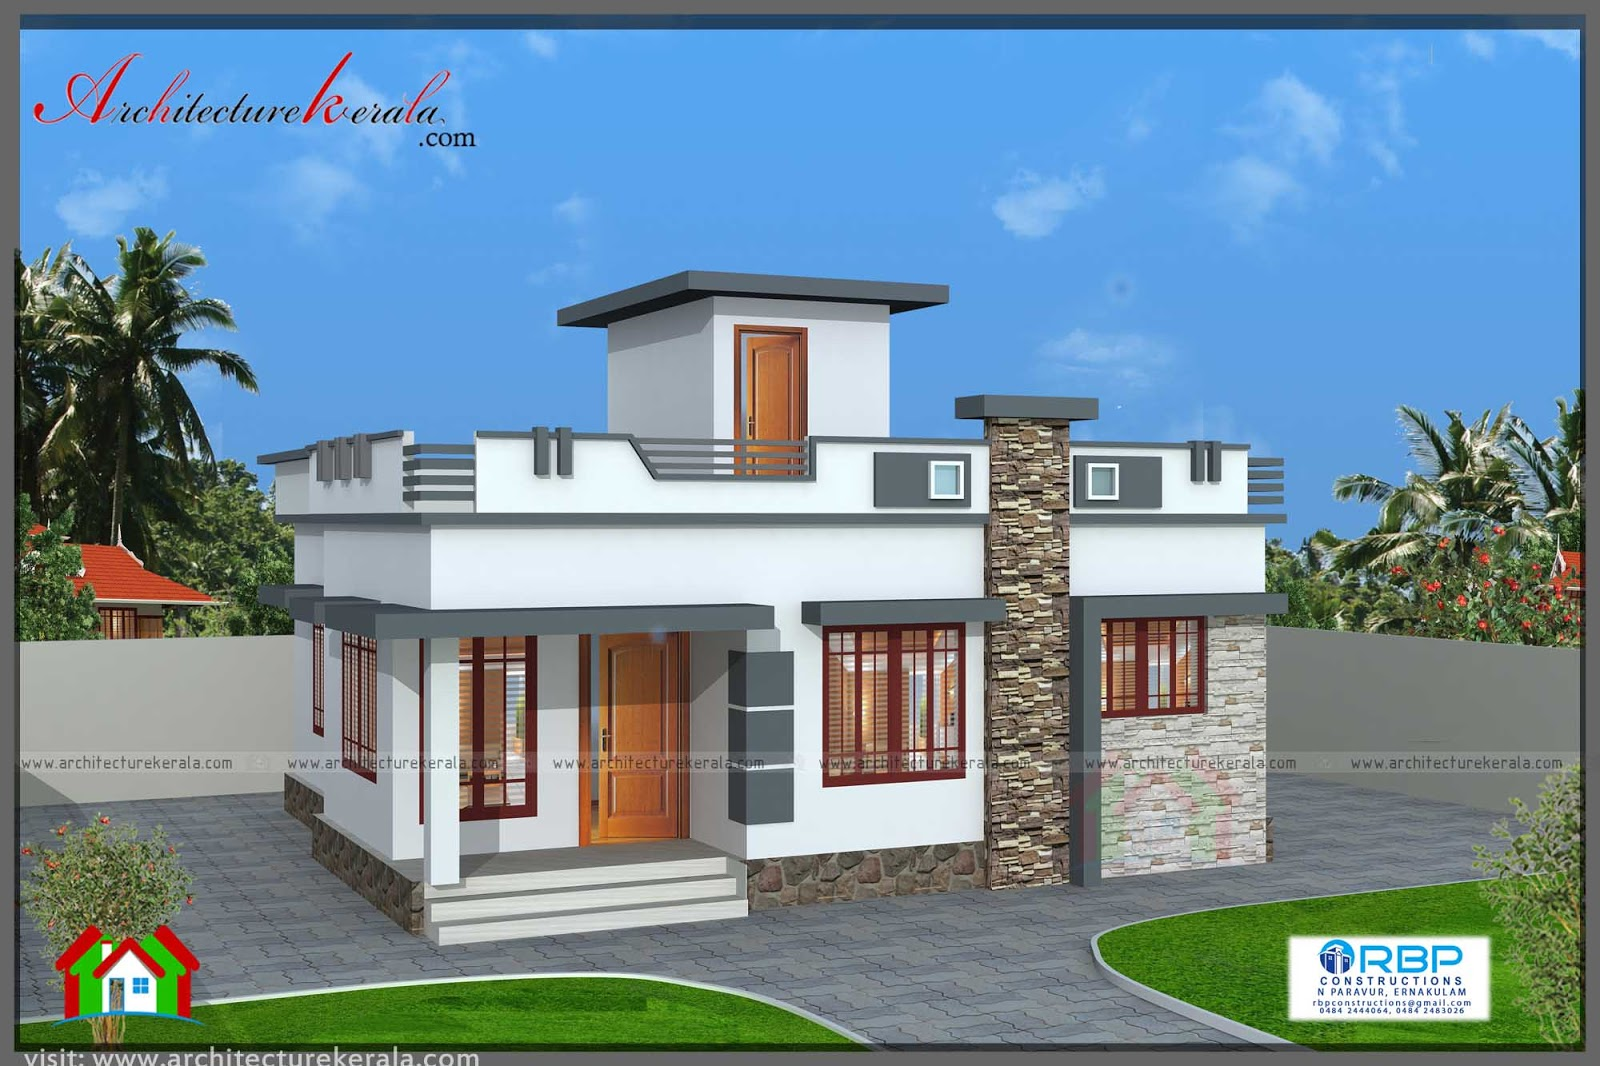 700 sqft plan and elevation for middle class family for House designs 950 sq ft